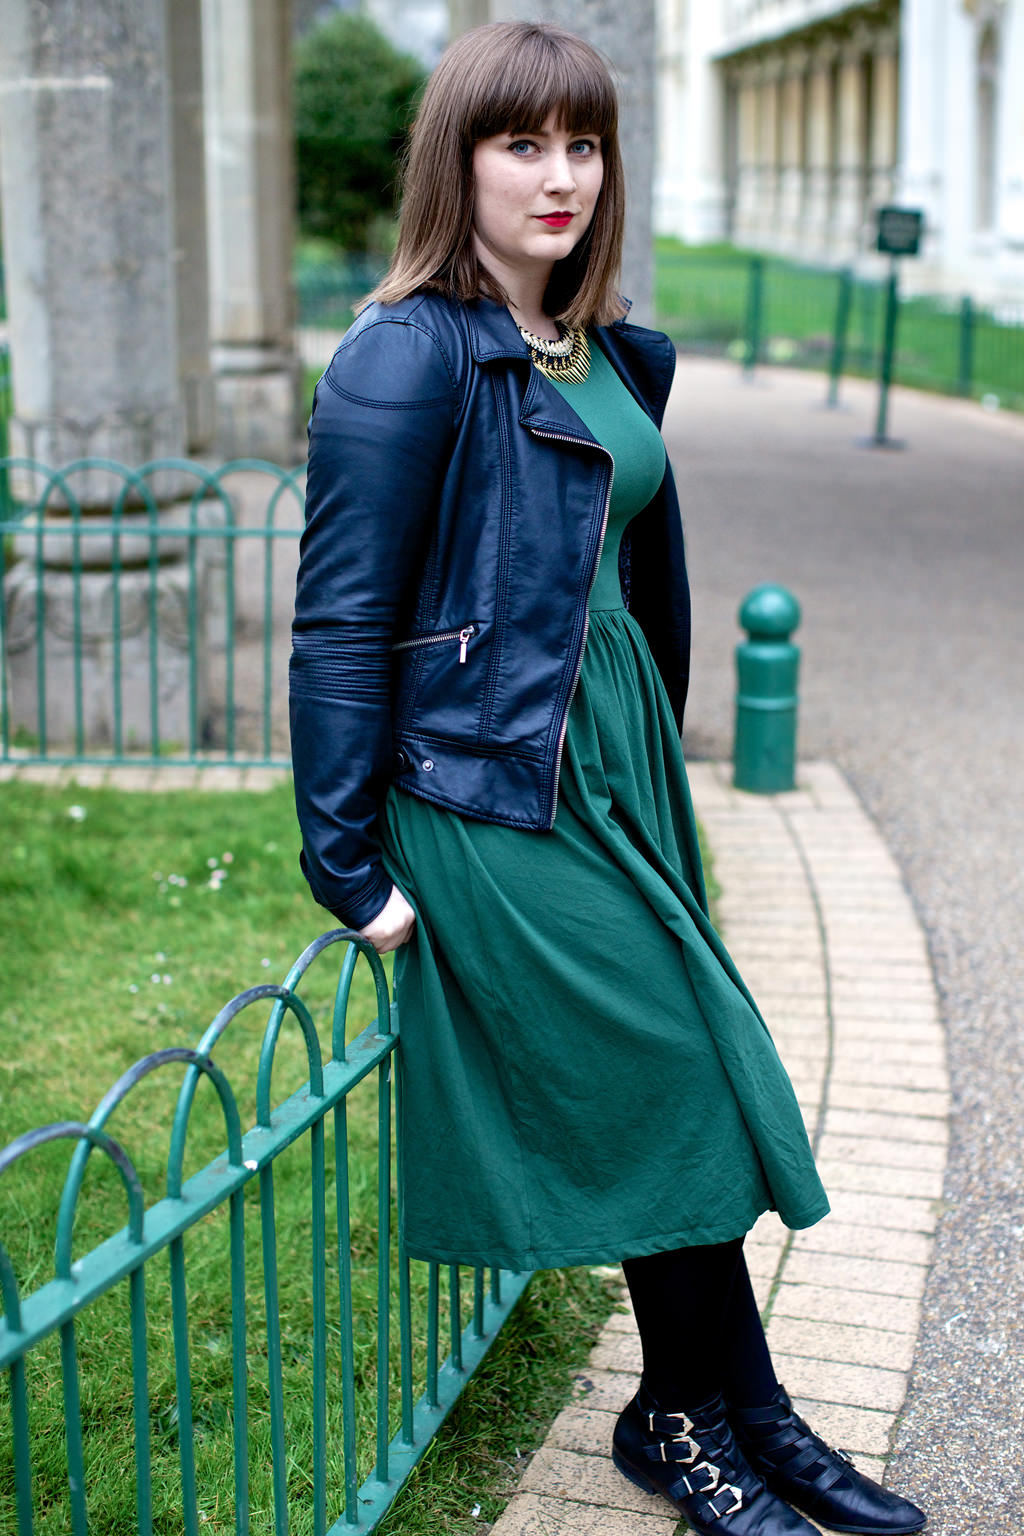 Green ASOS Midi Dress 1 030 mini Green in the Pavilion Gardens